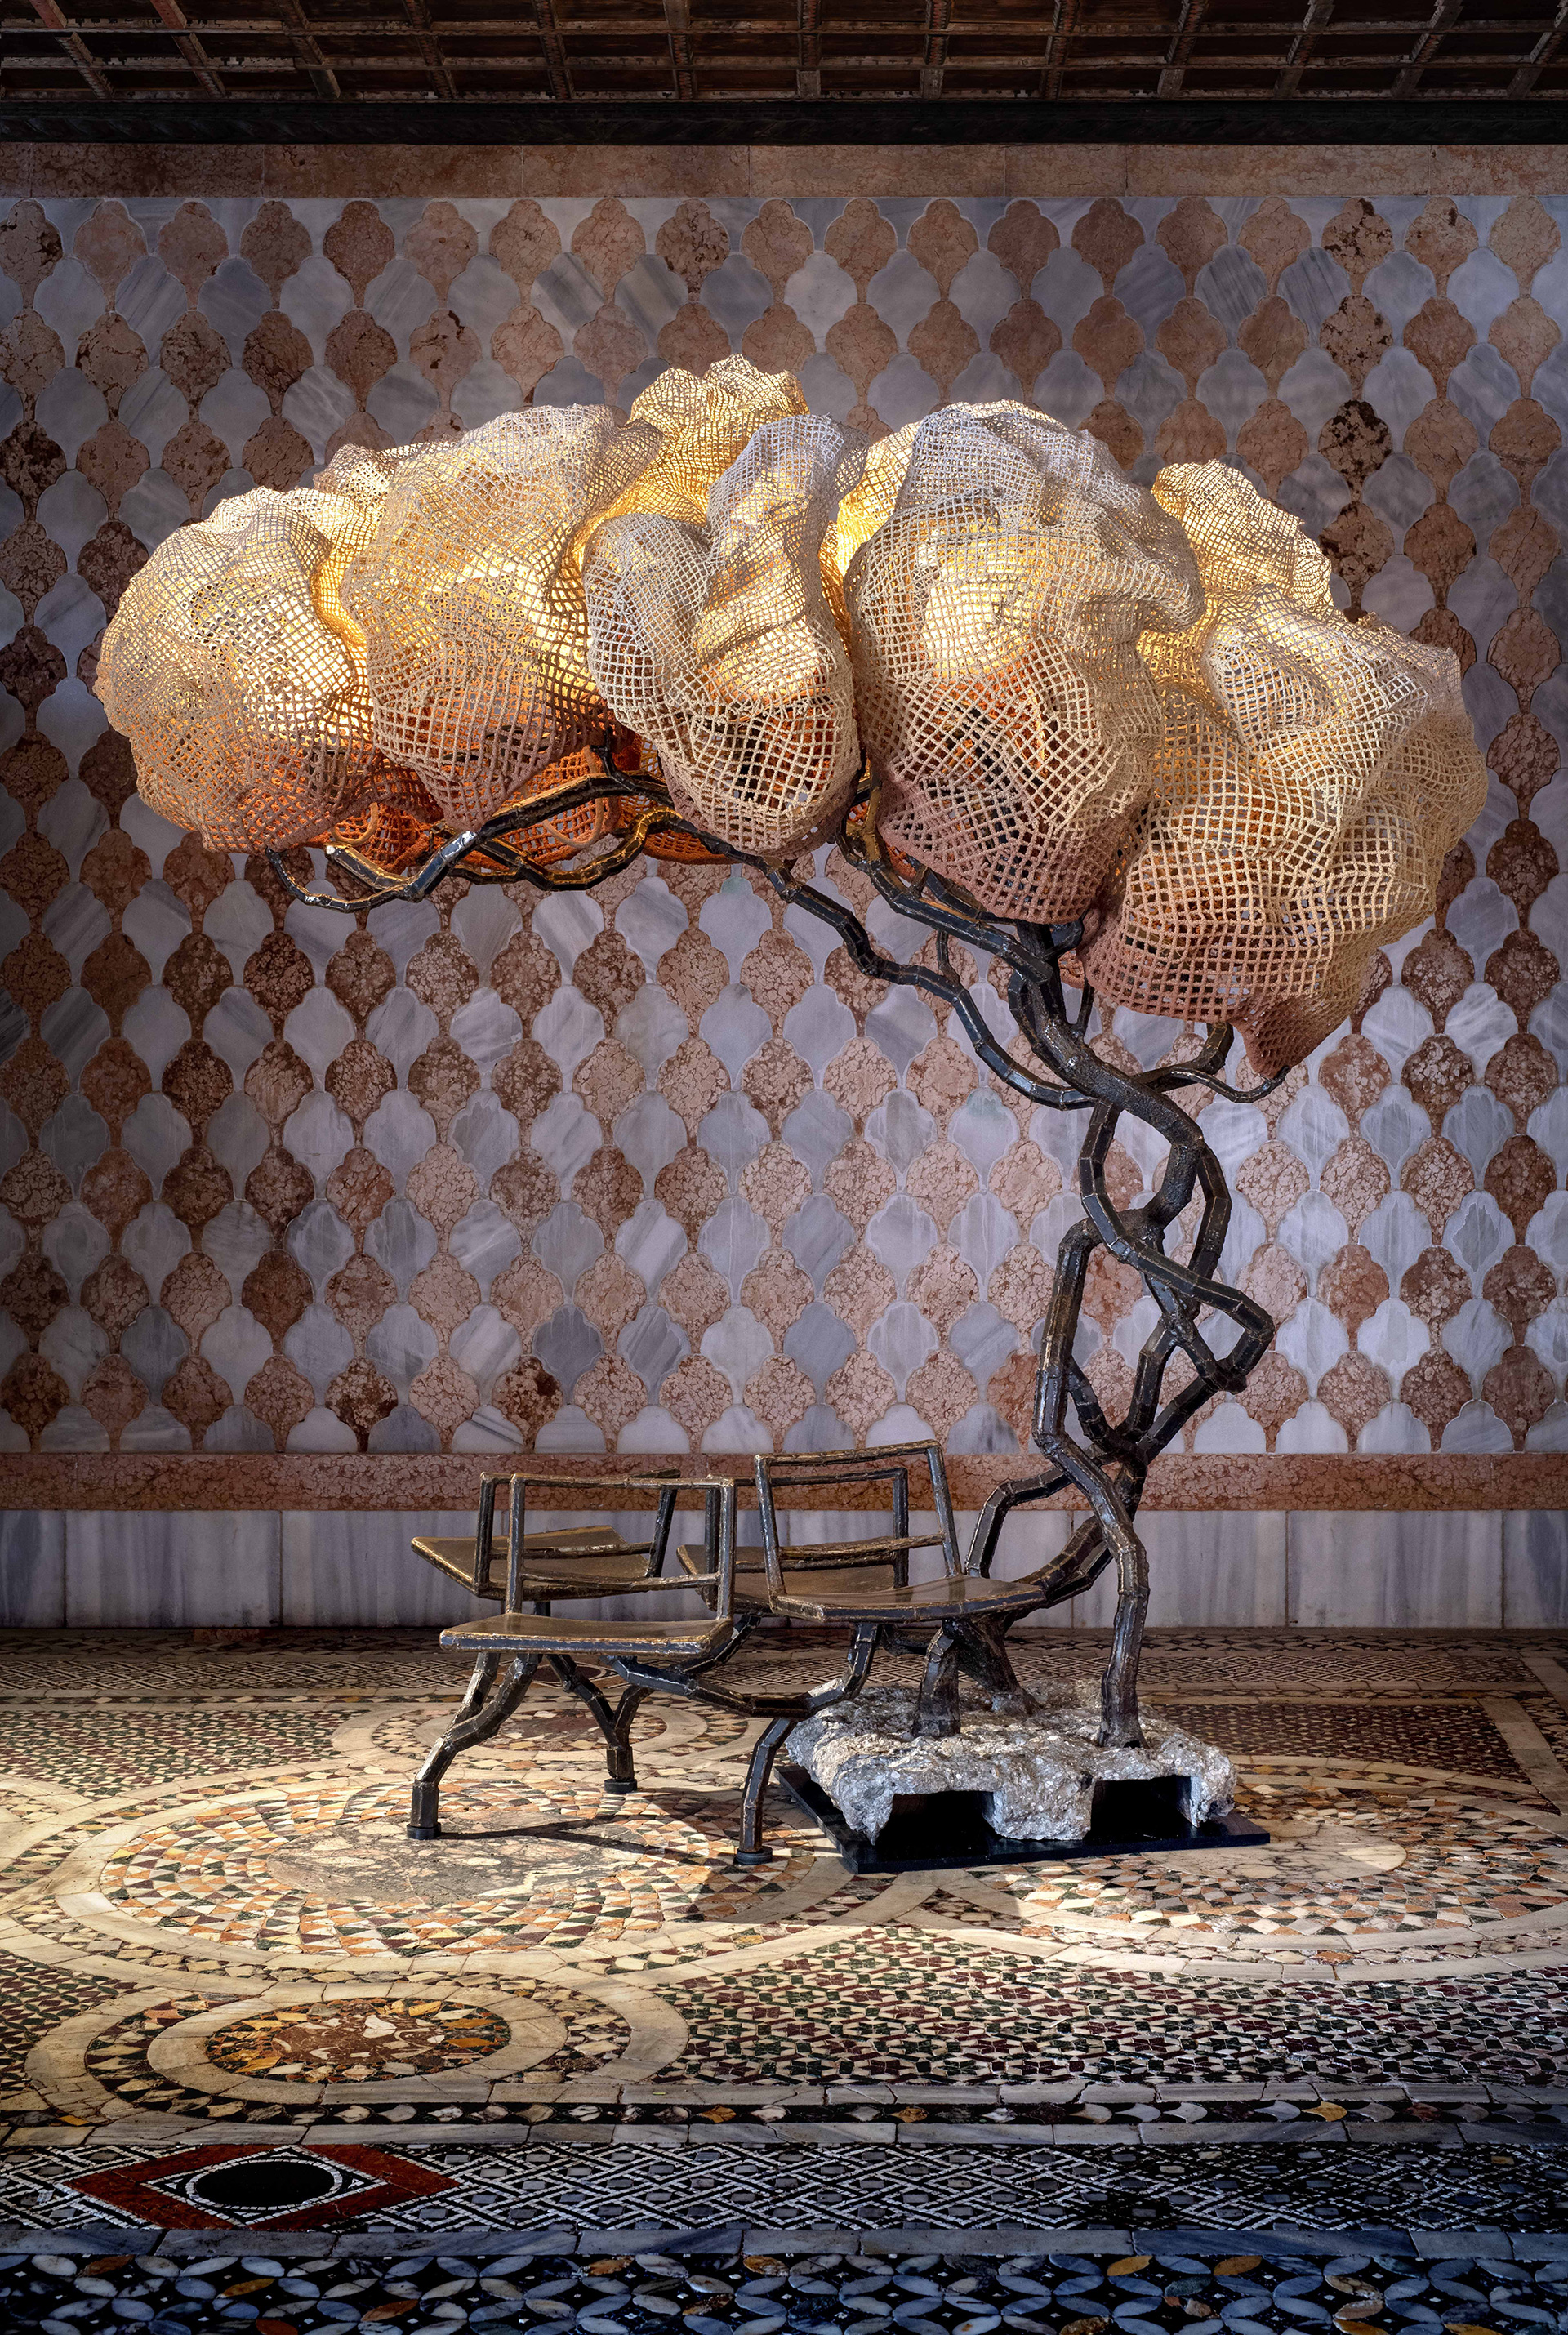 Nacho Carbonell; Under a Light Tree (136/2019); 2019; Corton steel, concrete, metal mesh with corkwall sprayed layers, light fittings; H280 l280 w100 cm / h111 l111 w40 in; Unique | Dysfunctional | STIR